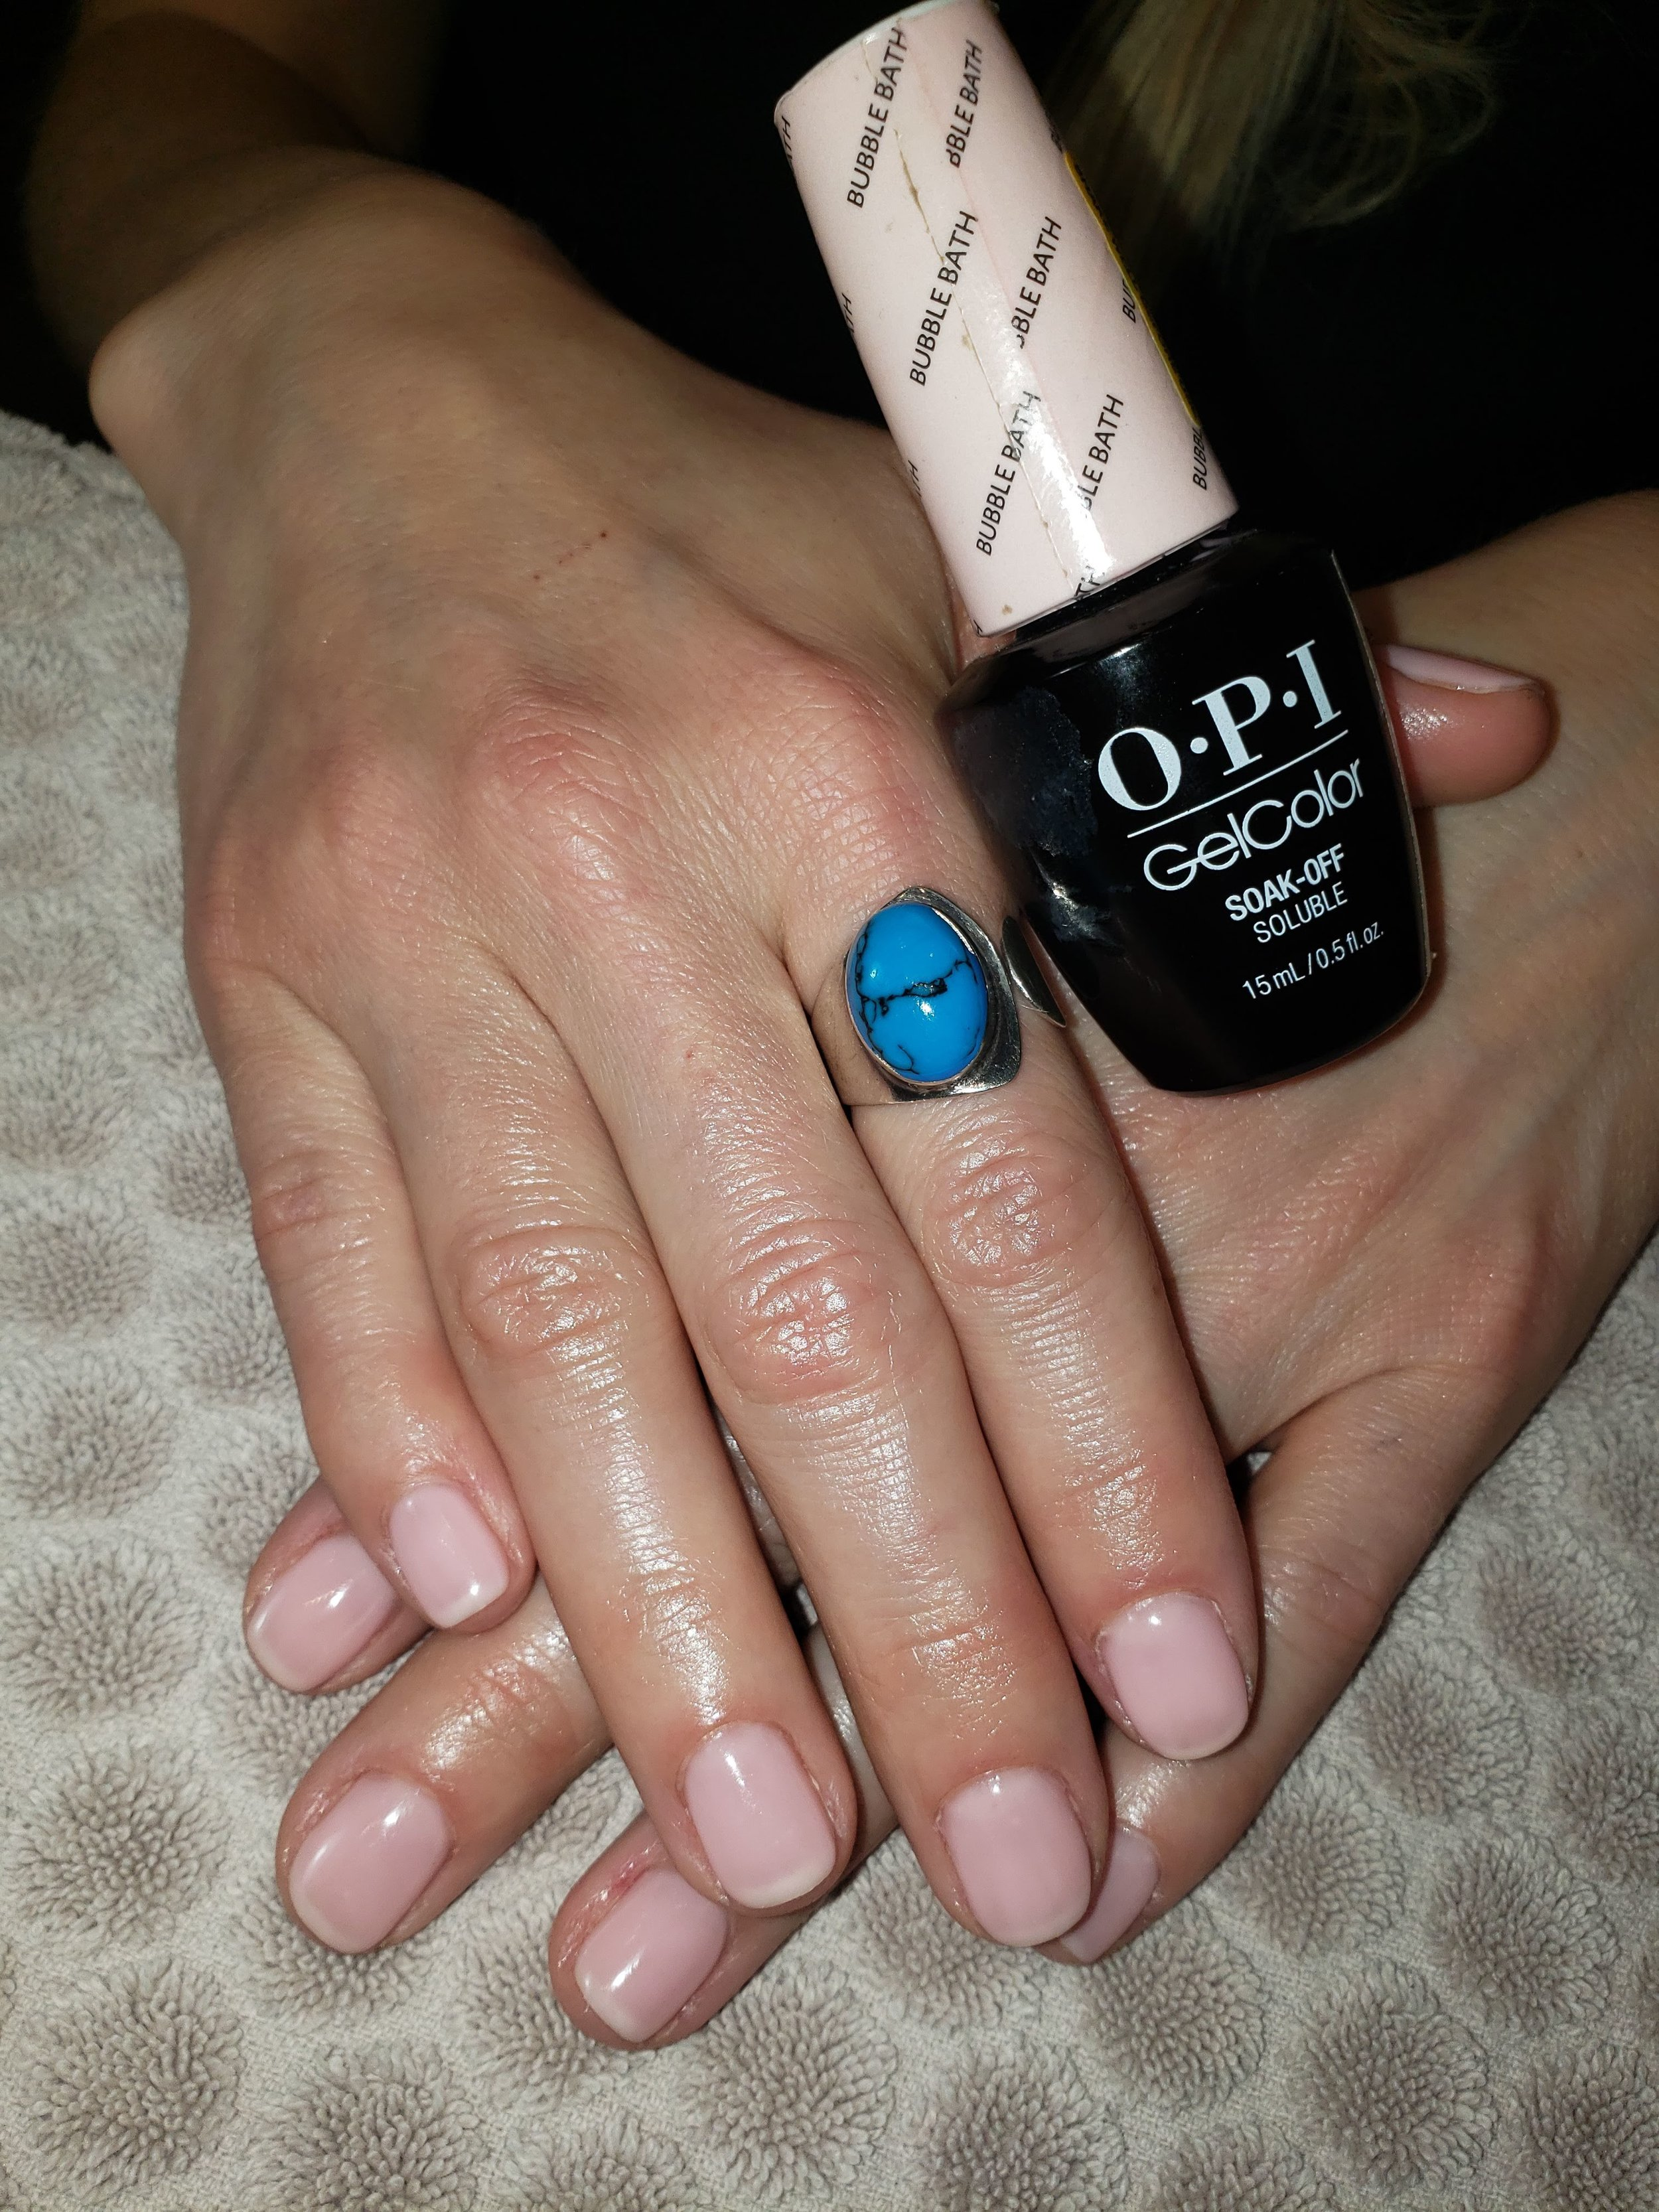 OPI, Gel Nails, Nude Mani, Natural Nails, Bridal Nails, Bride, Mani, Wedding Mani, Perfect Pink Nails, Nude Mani, Pastel Pink, Perfect Mani, Best in Bend, Oregon